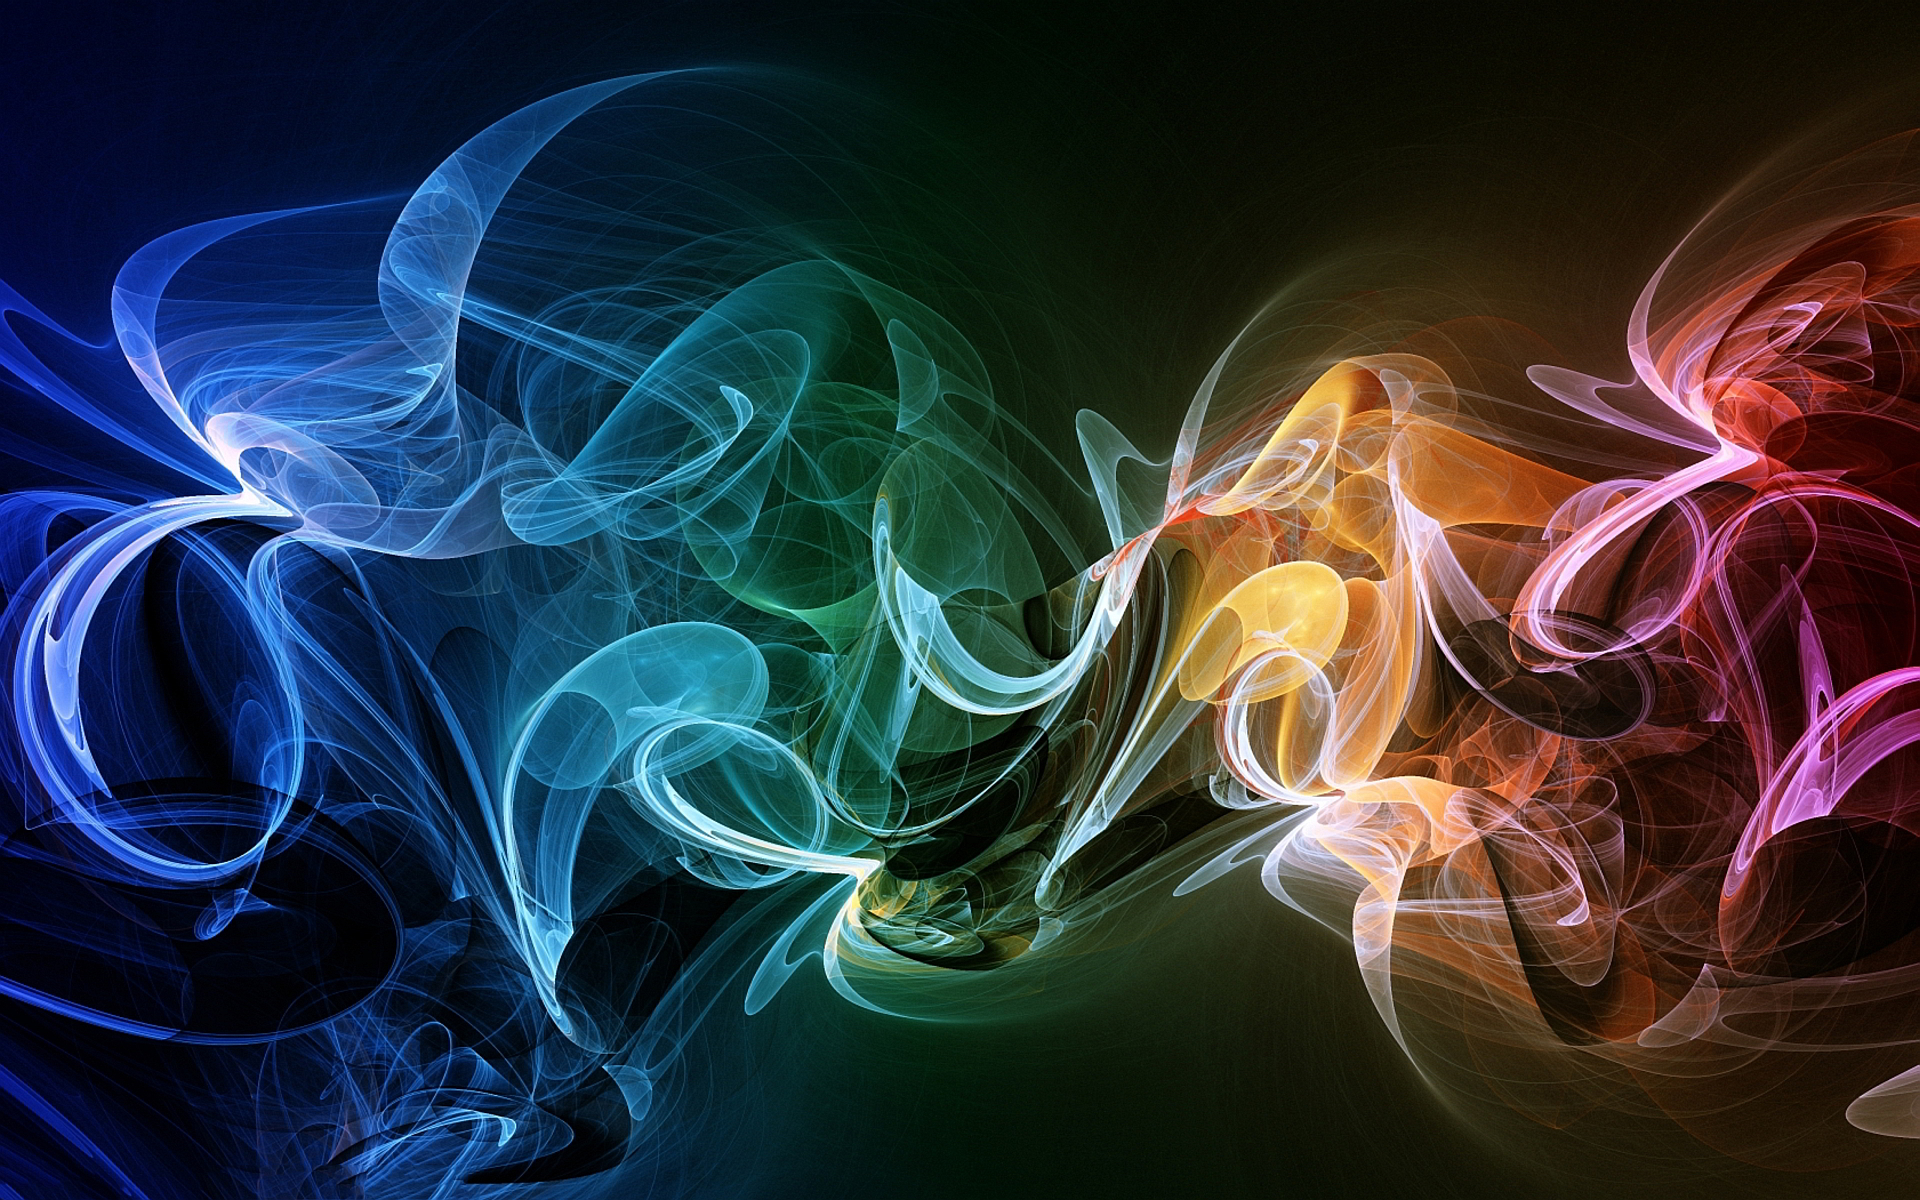 Abstract colorful smoke art